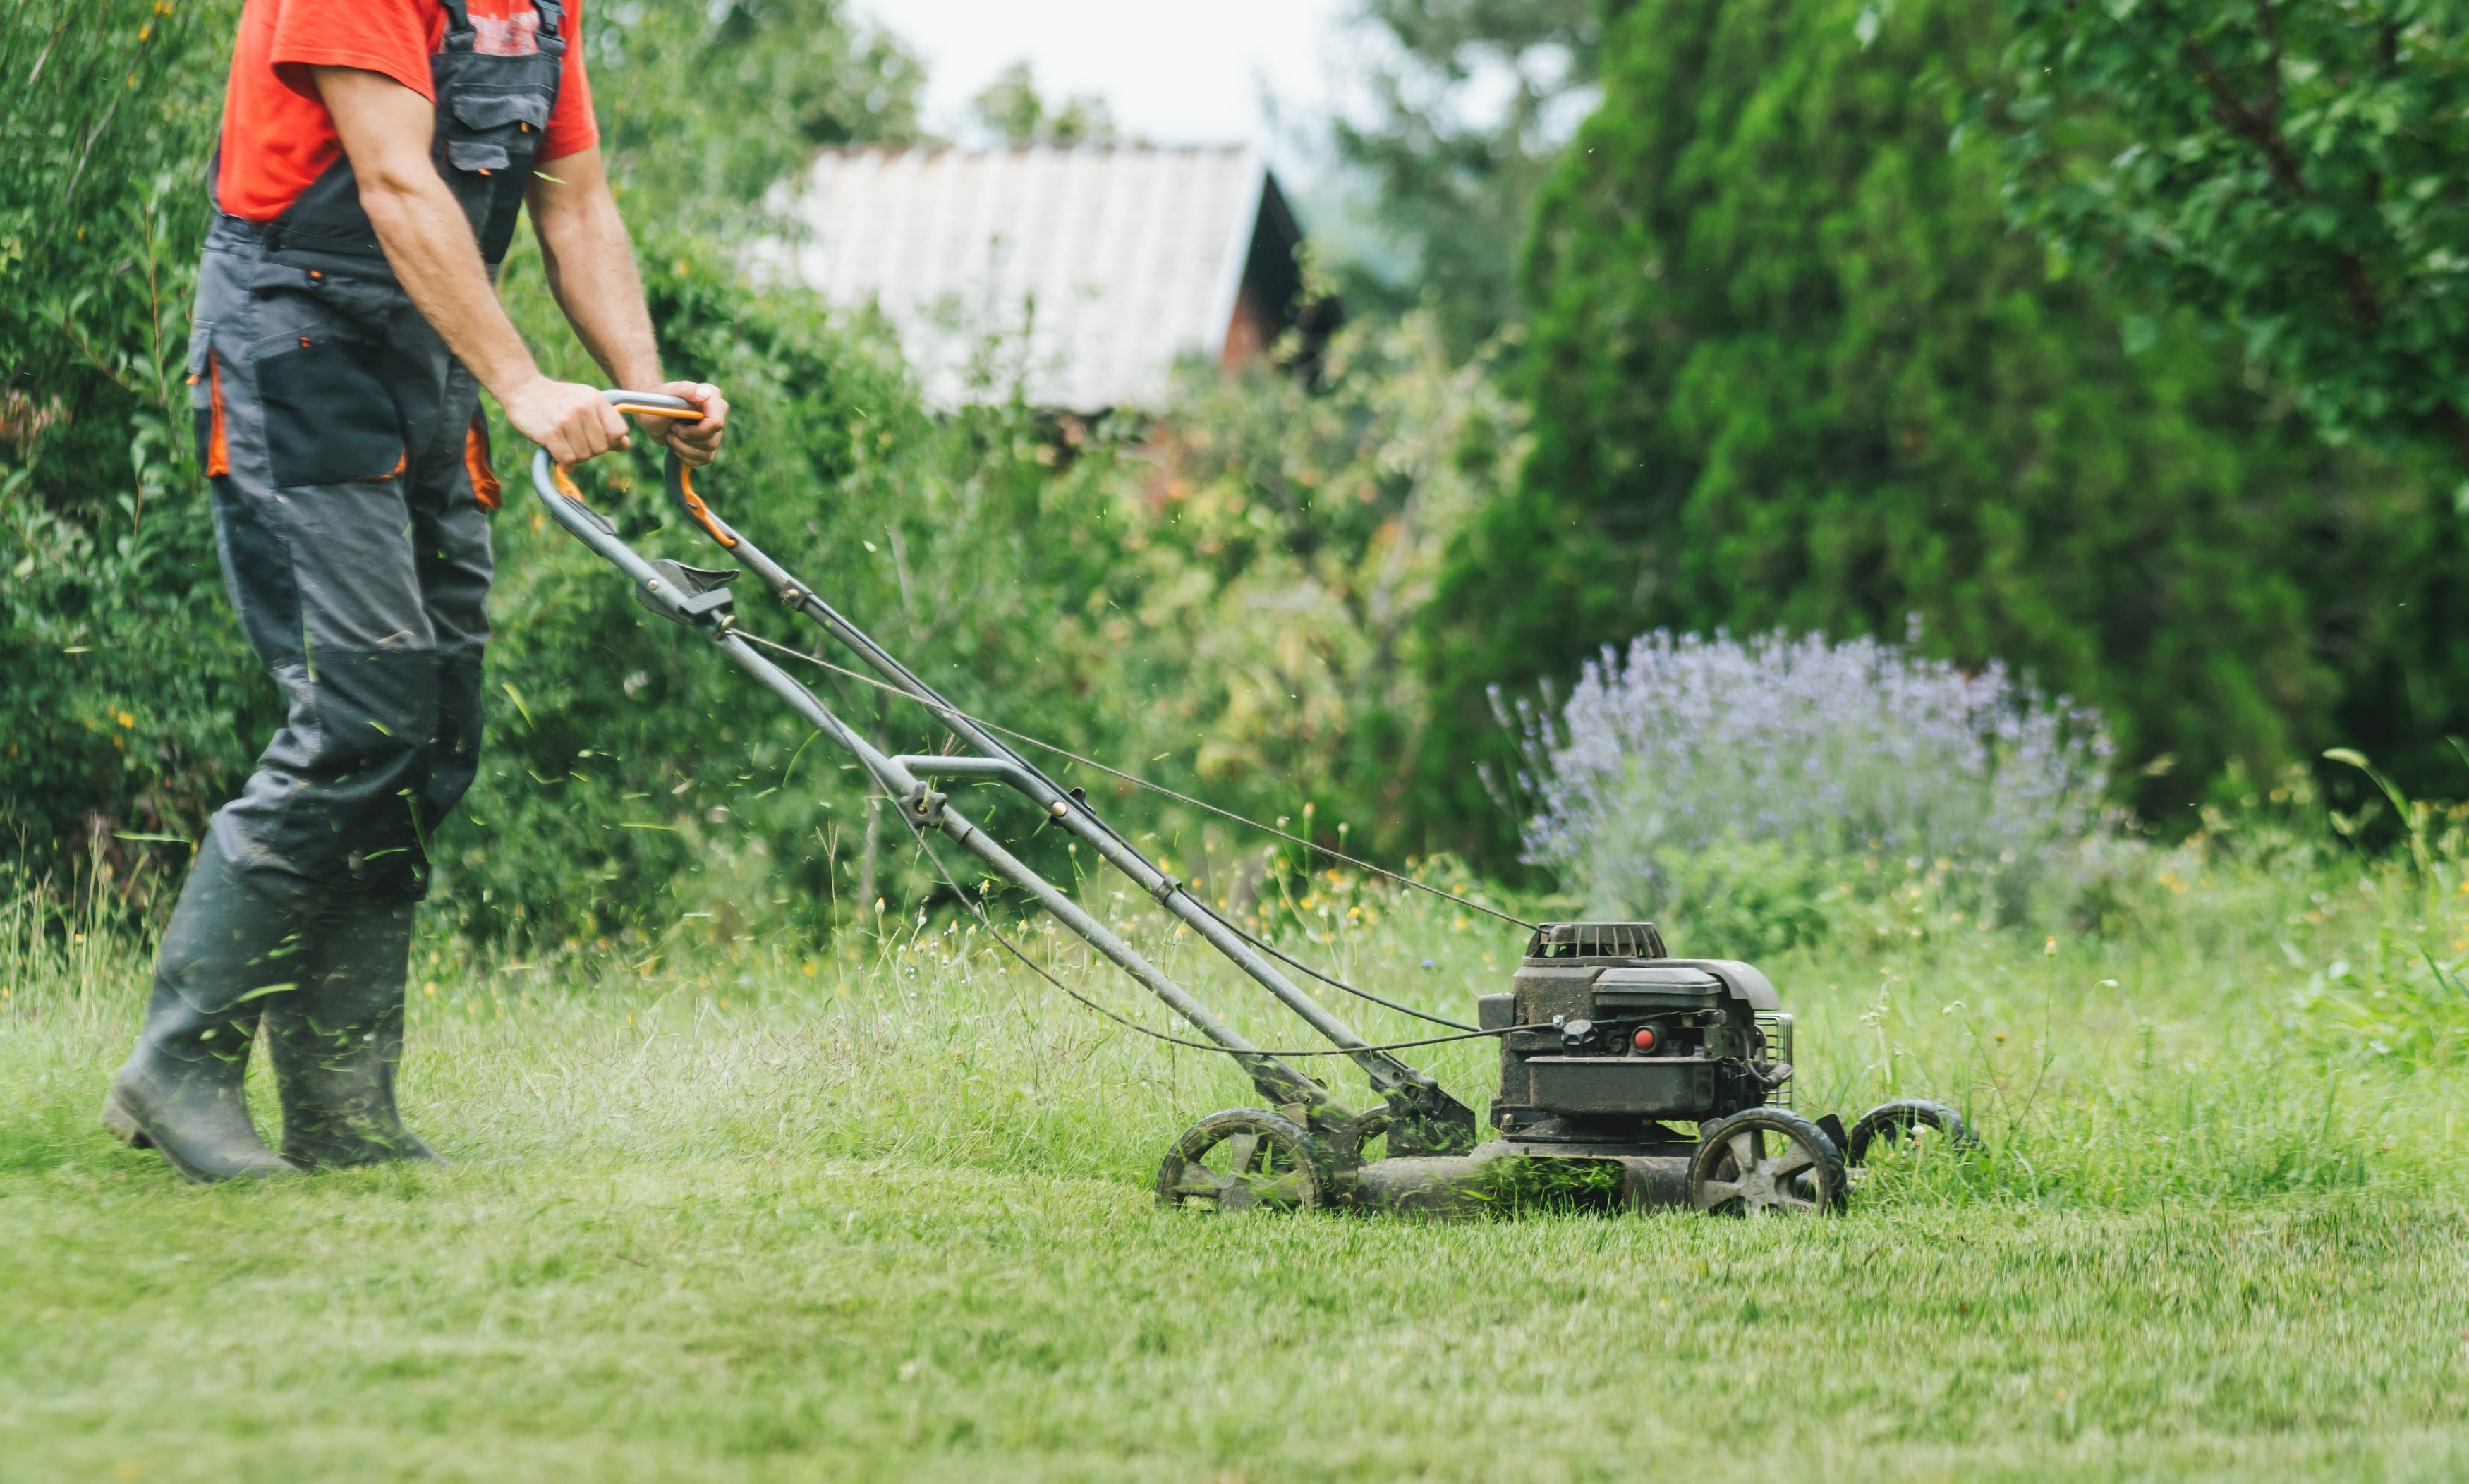 Although clear markers showed where home property lines began and ended, this never stopped my neighbor's weeds from creeping into my yard. Now we share the cost and labor of yard care for both lawns, with great results.